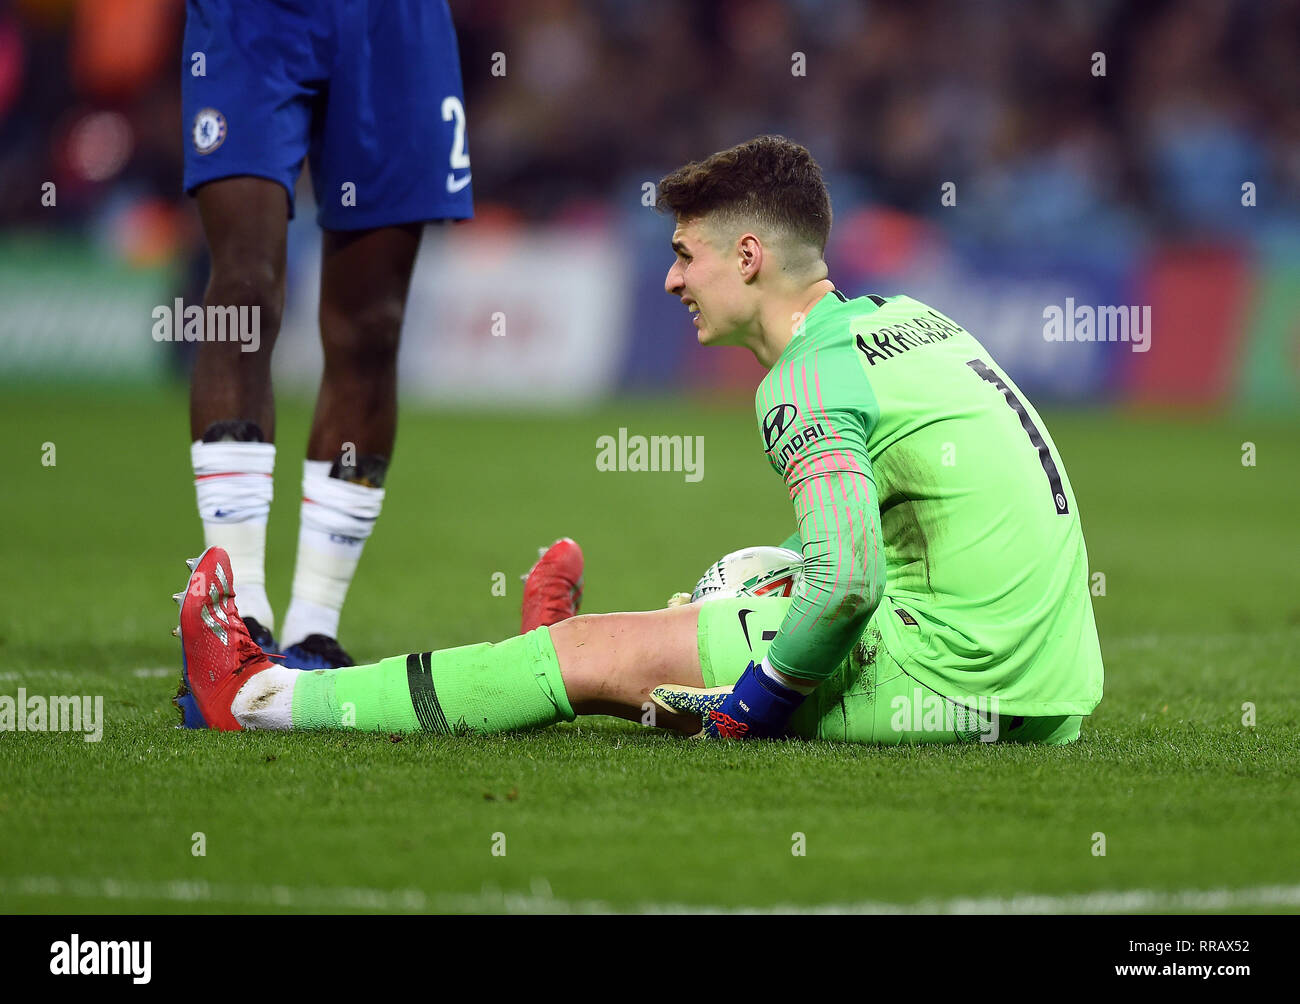 CHELSEA GOALKEEPER KEPA ARRIZABALAGA STRUGGLING WITH CRAMP DURING THE PERIOD OF EXTRA-TIME., CHELSEA V MANCHESTER CITY, CHELSEA V MANCHESTER CITY - Stock Image